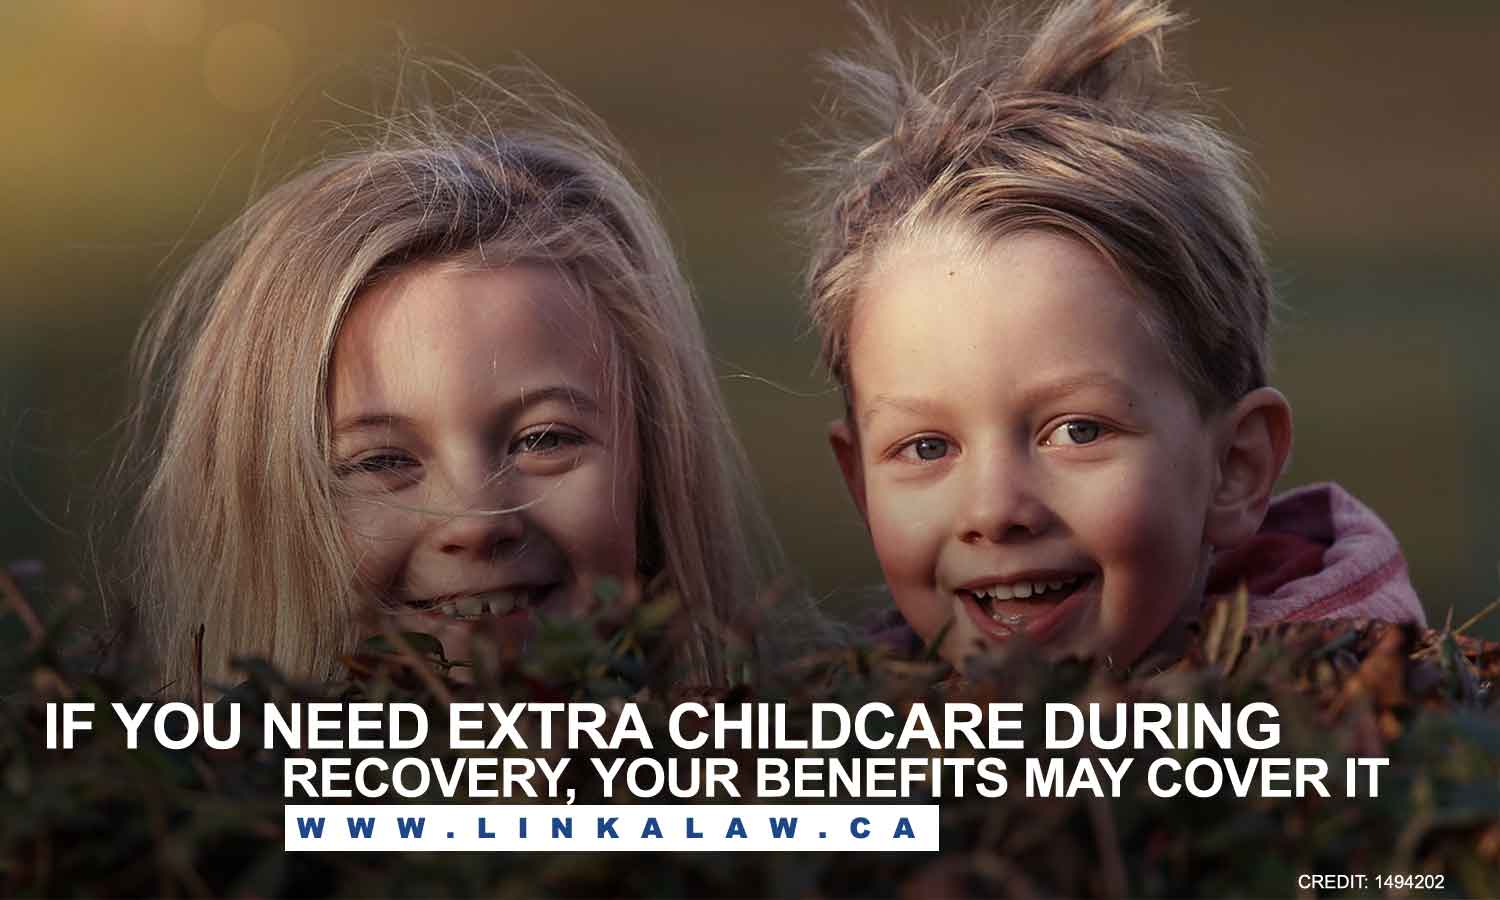 If you need extra childcare during recovery, your benefits may cover it